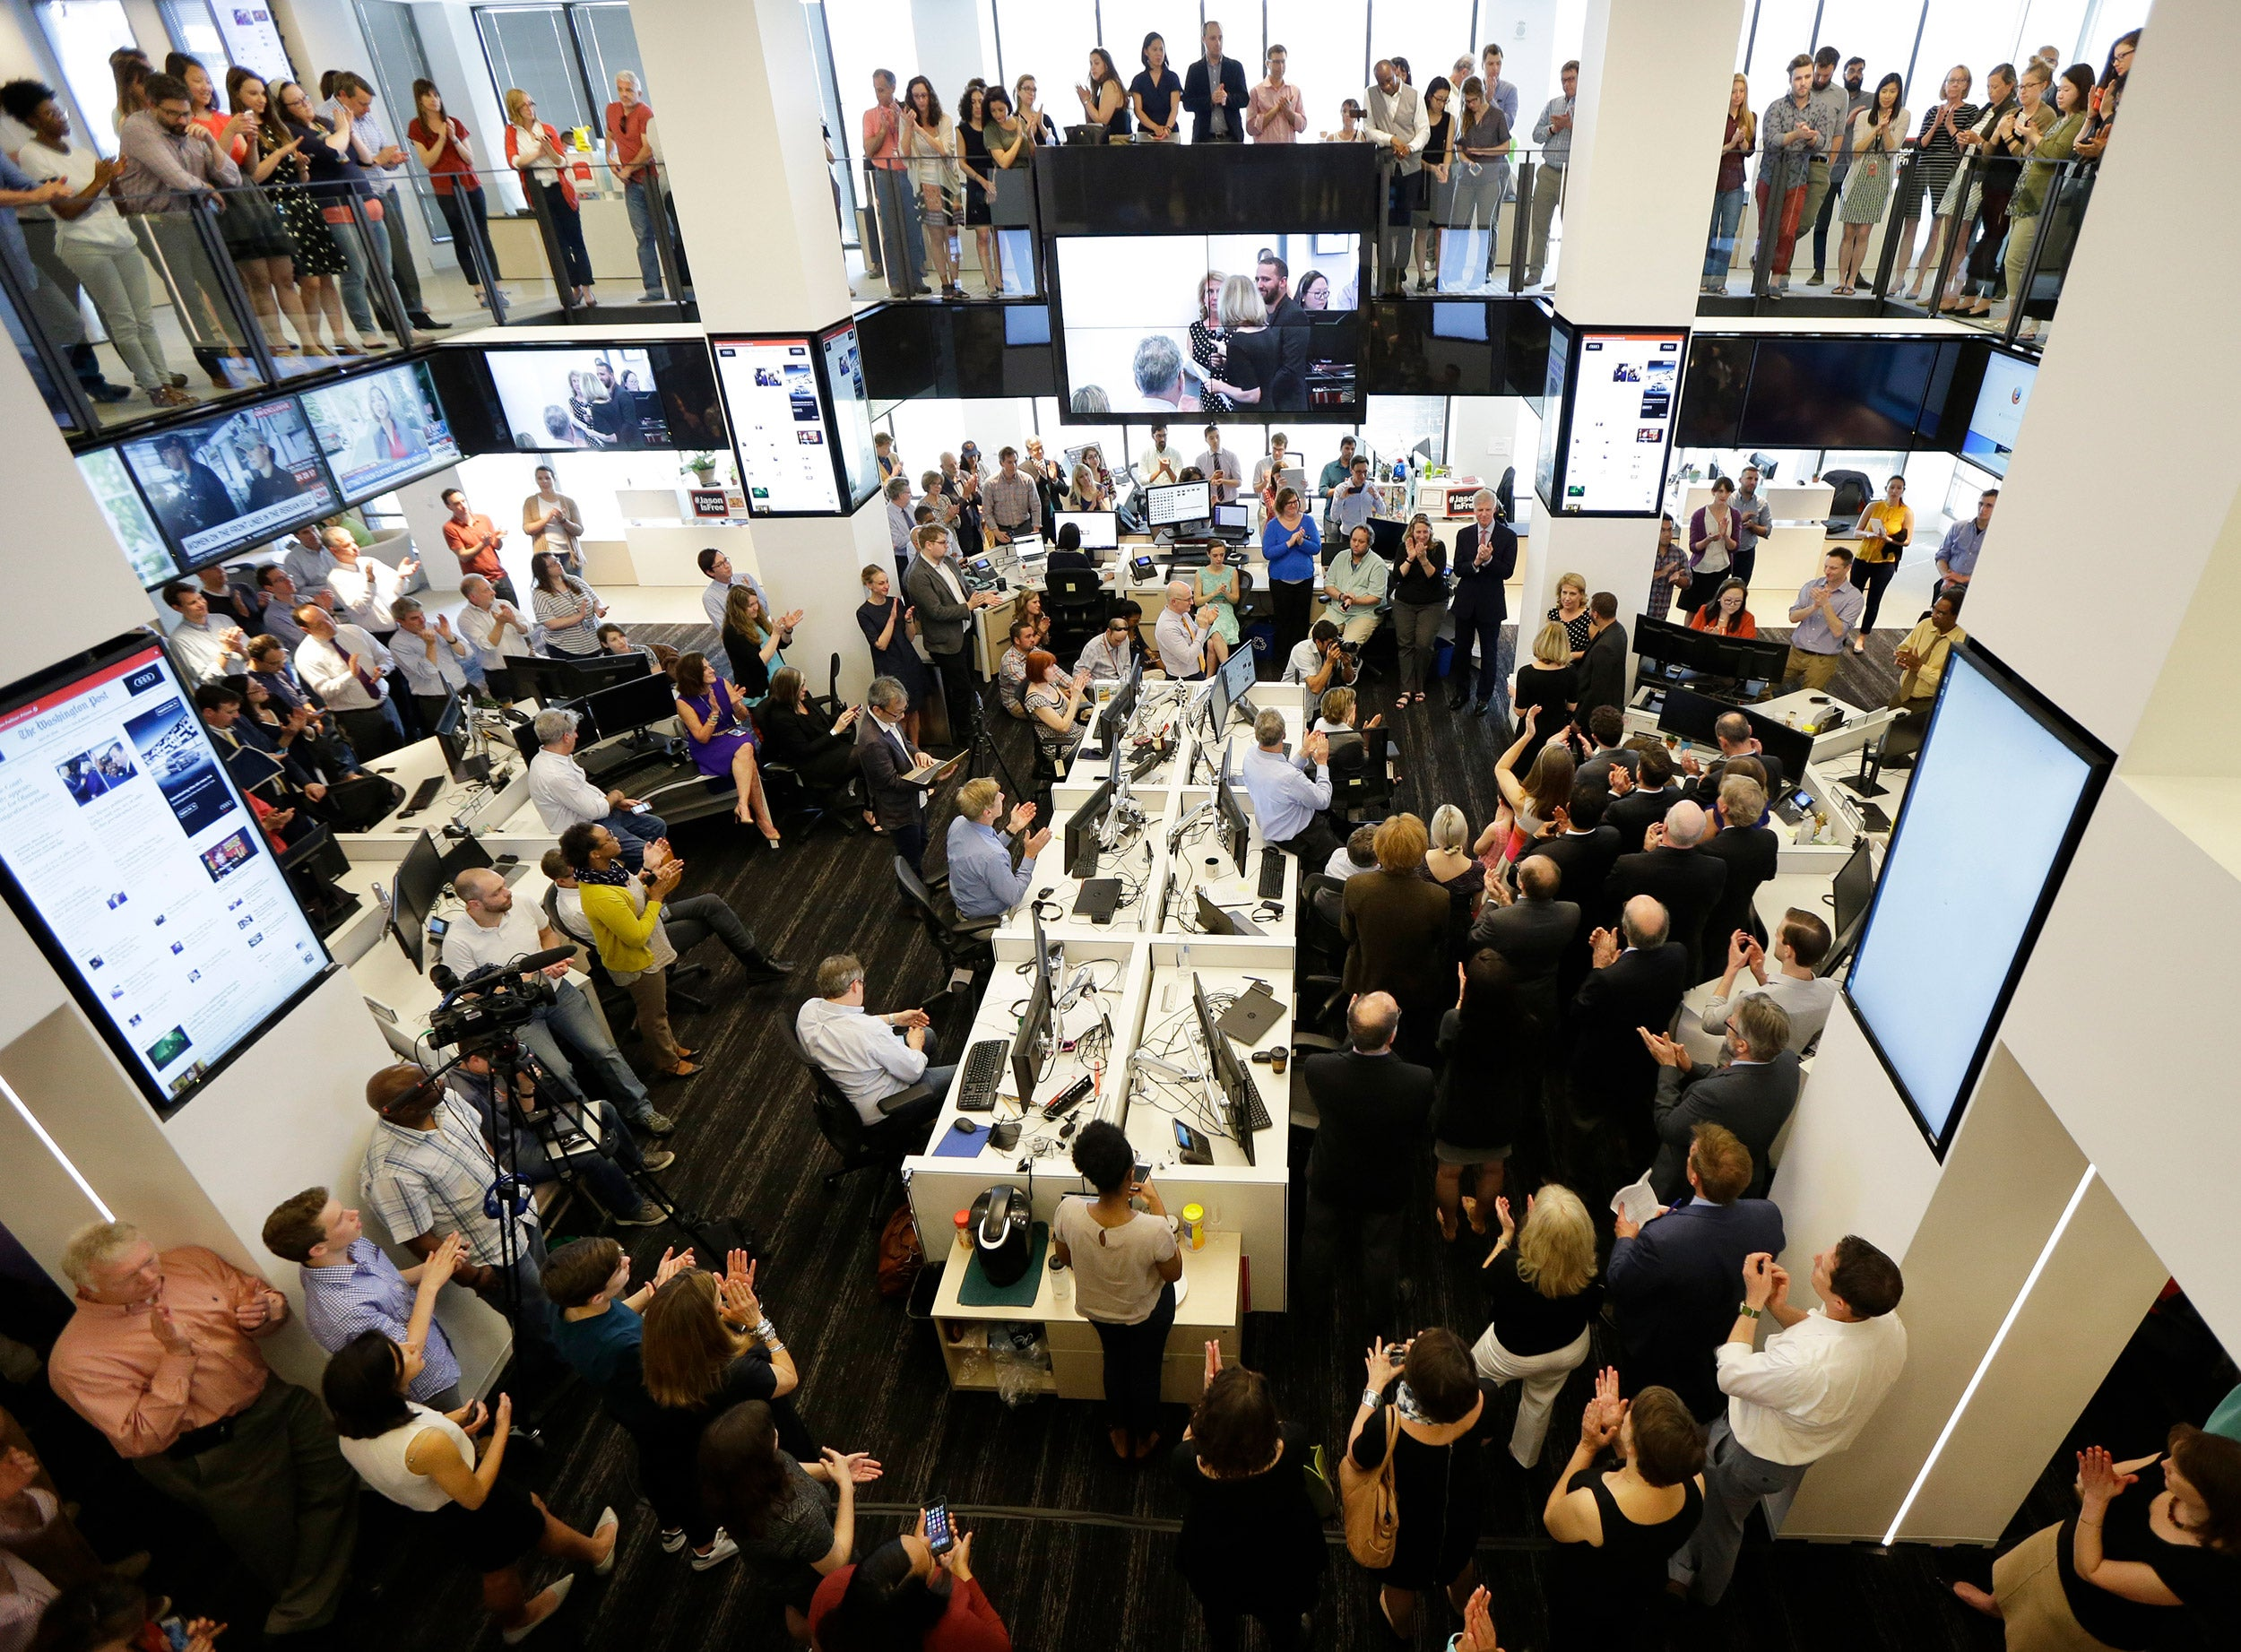 Washington Post newsroom after getting 2016 Pulitzer Prize for National Reporting.